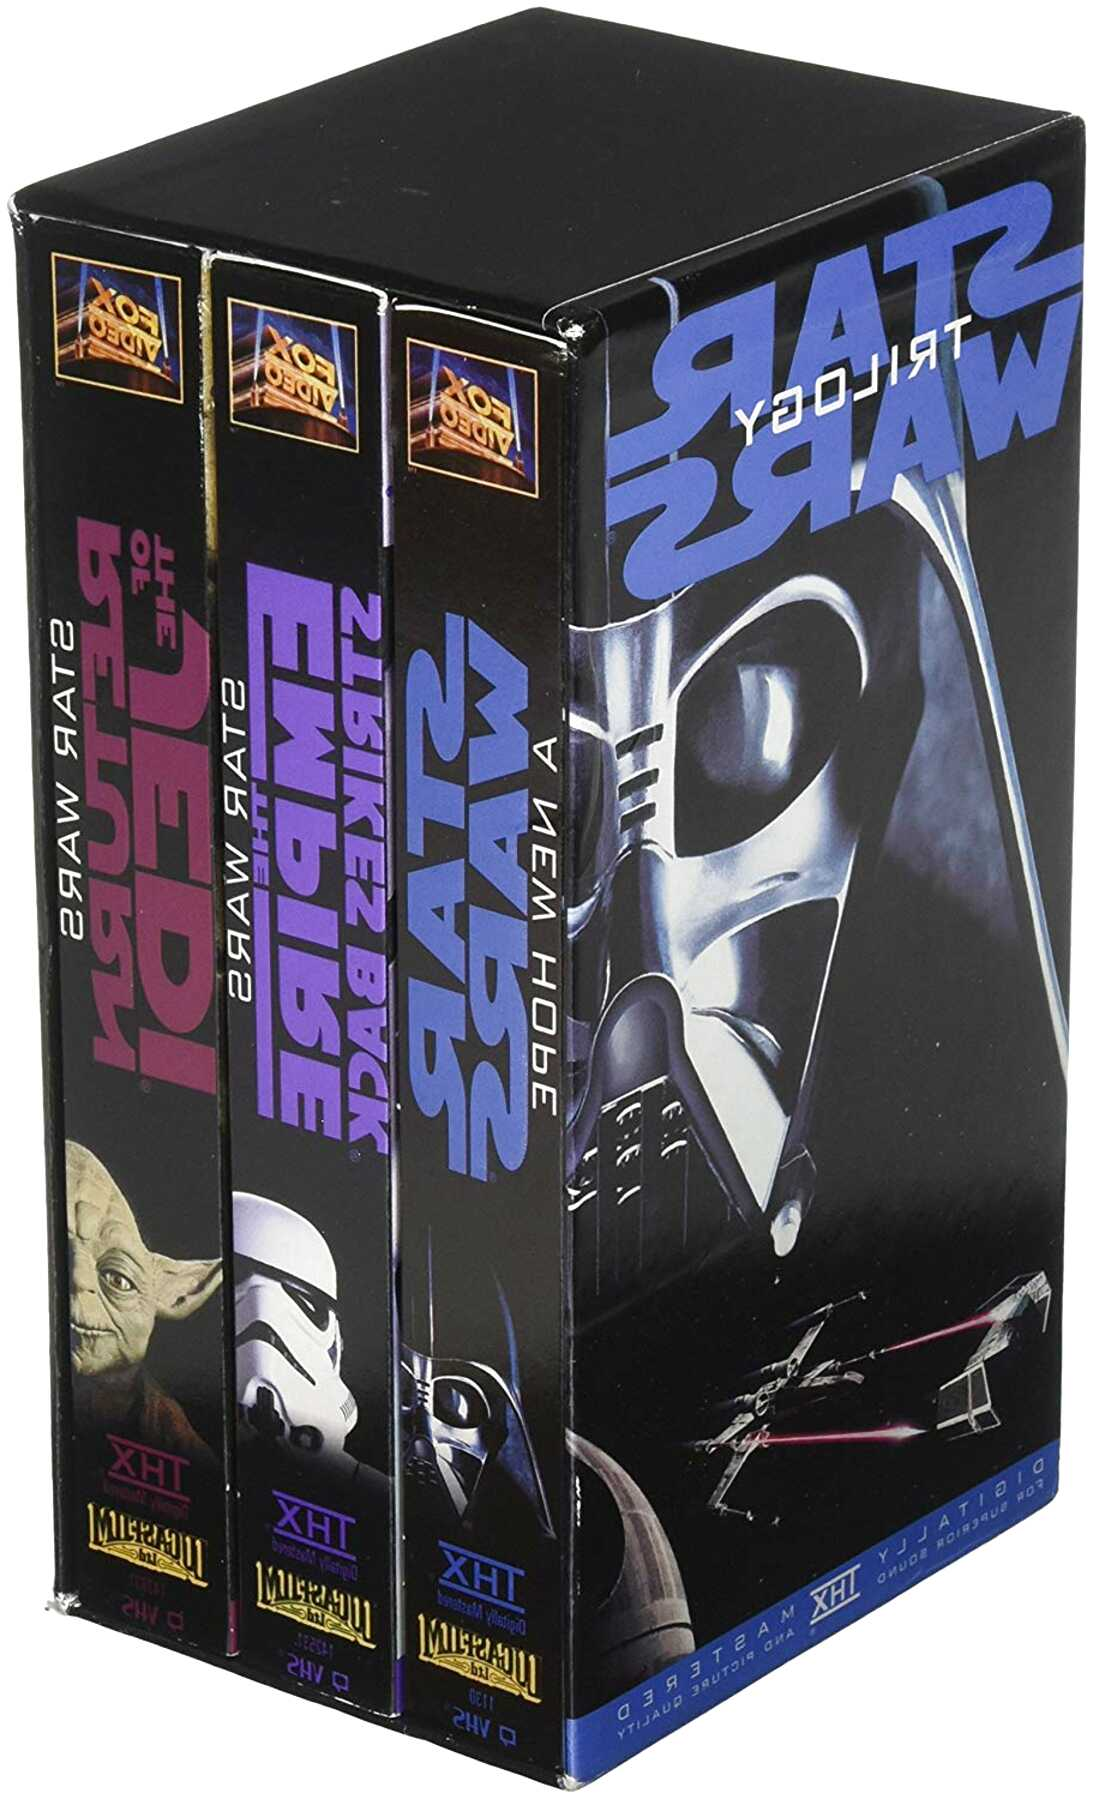 Star Wars Vhs Tapes For Sale In Uk View 77 Bargains